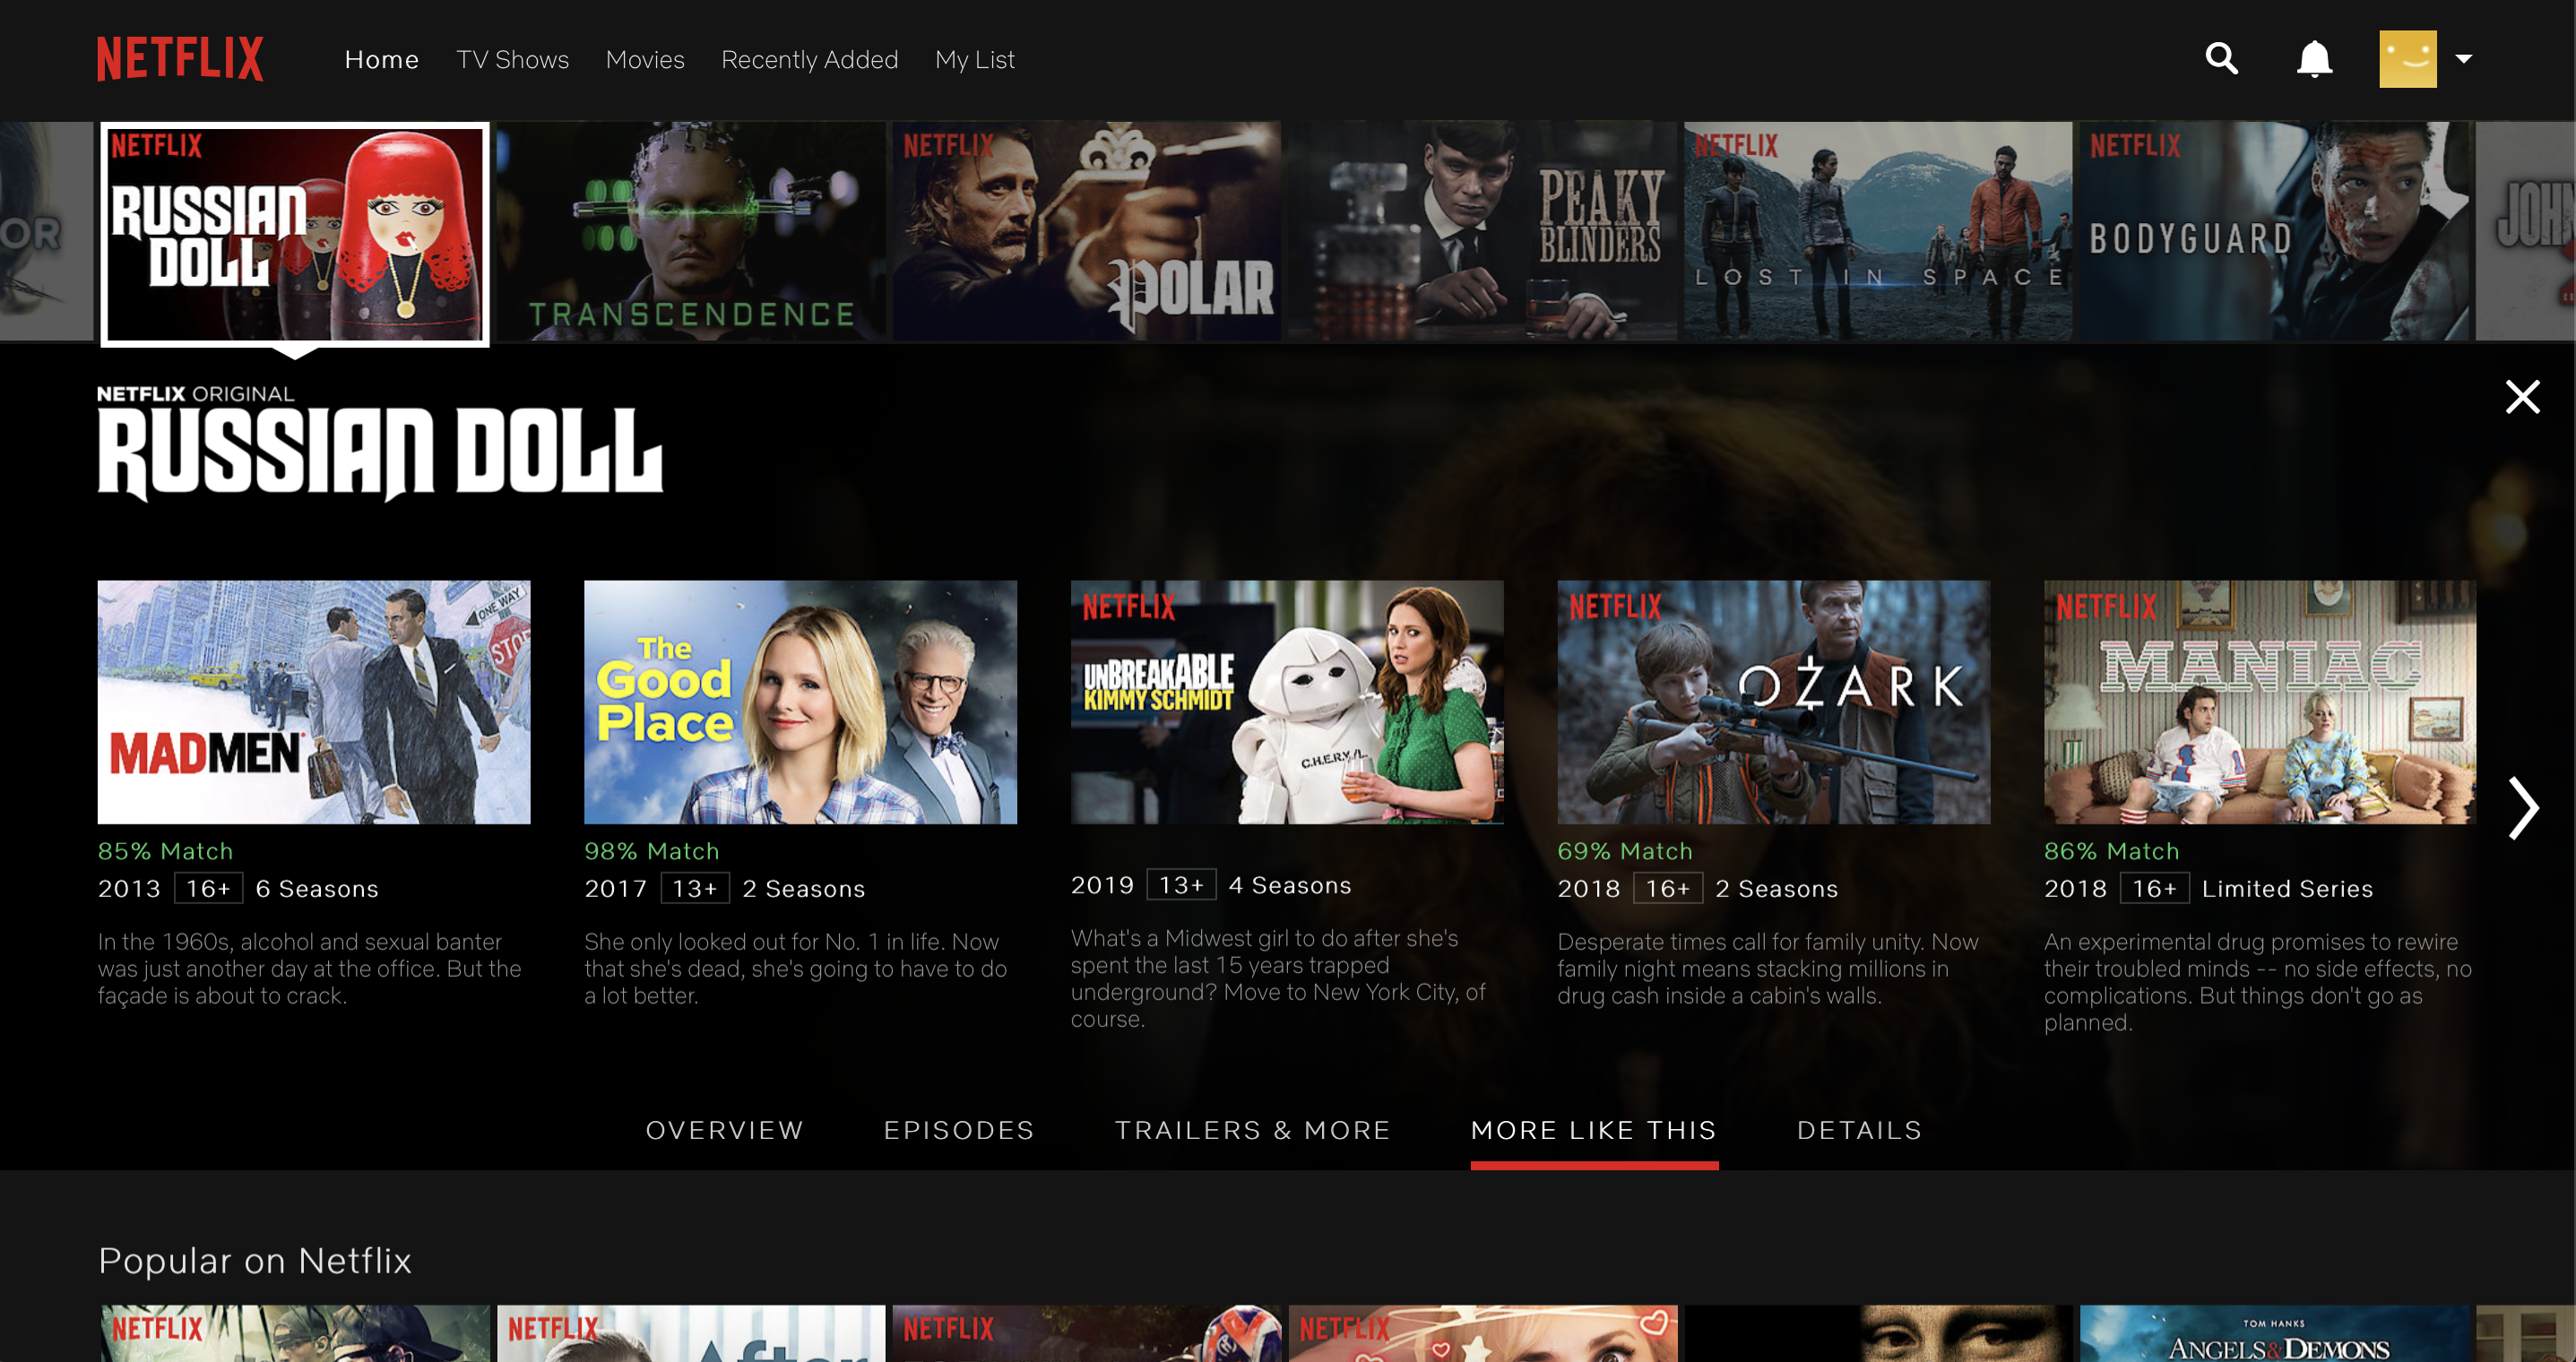 Netflix User Interface Design Analysis - The Startup - Medium